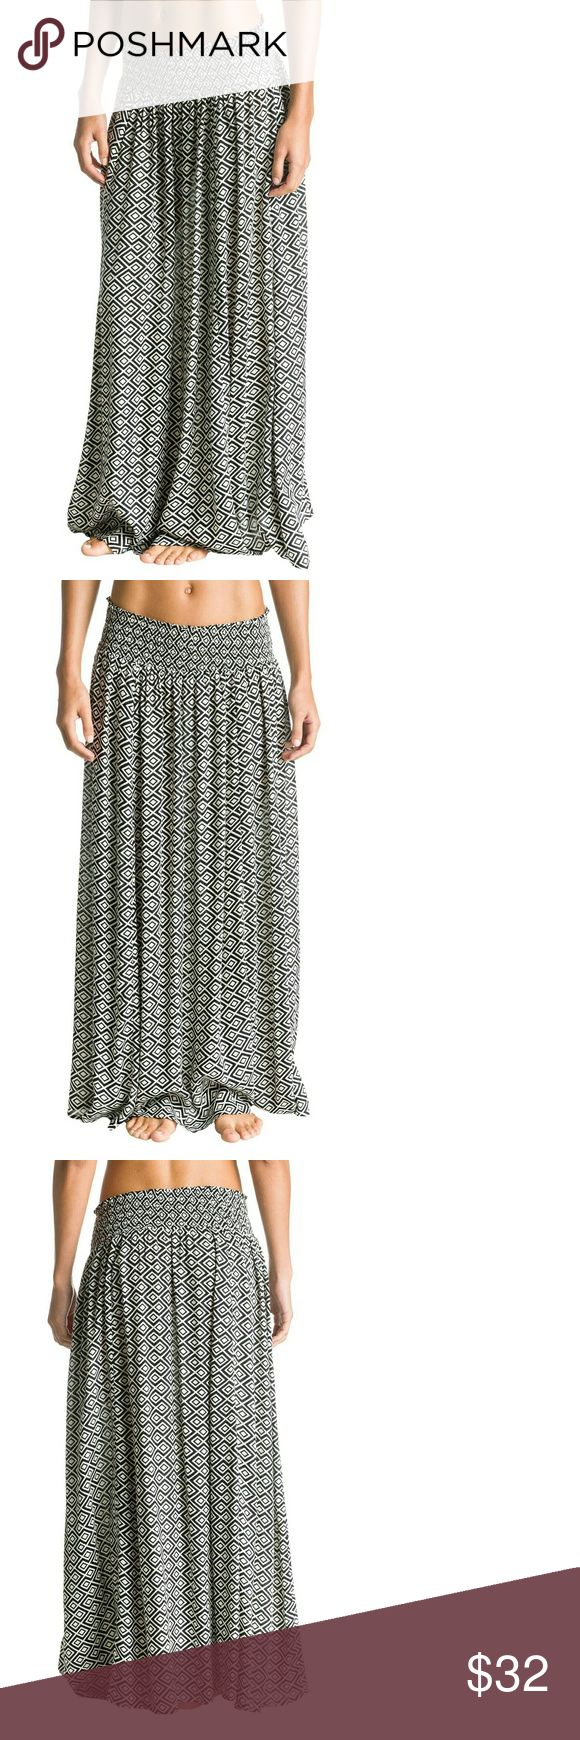 Roxy Mixed Up Printed Maxi Skirt Features      100% Viscose     Imported     Hand Wash     Graphic-pattern maxi skirt with smocked waistband Roxy Skirts Maxi